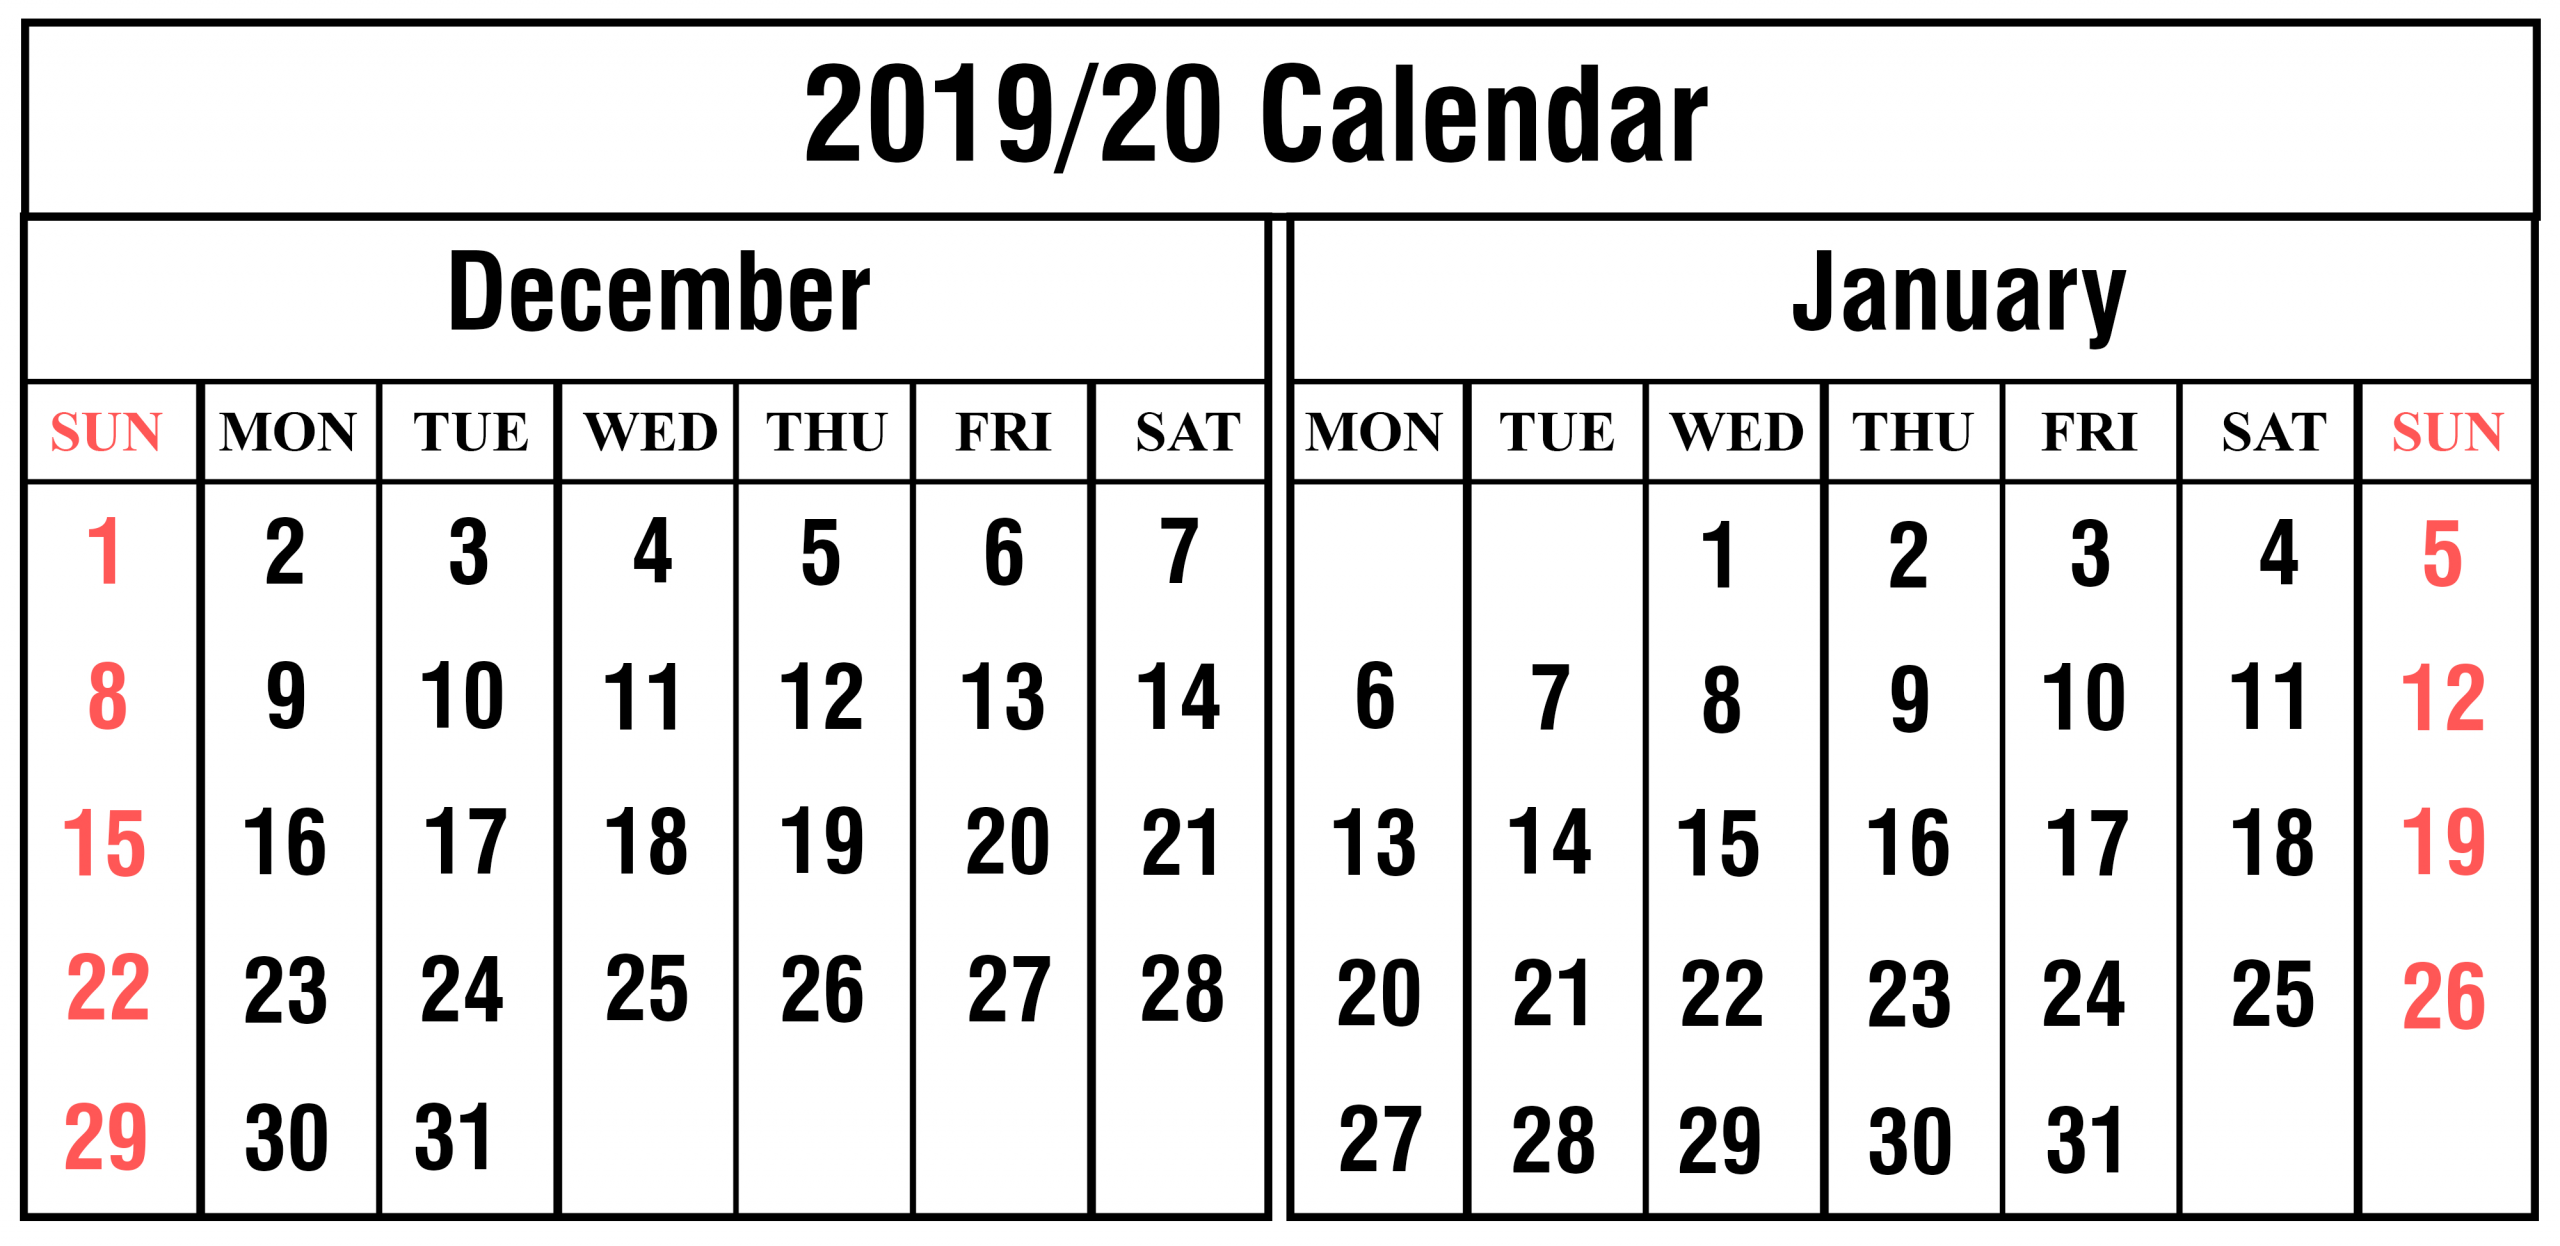 Free December And January 2019-2020 Calendar Templates